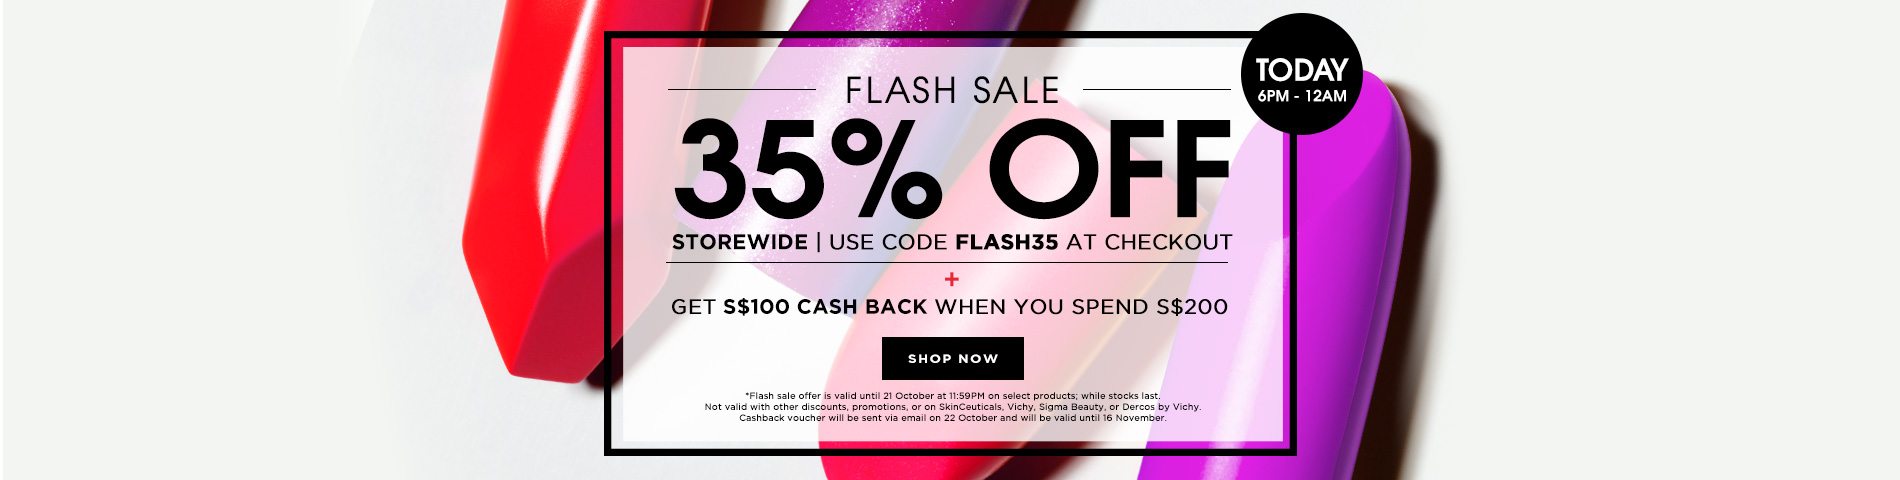 Wk43 14 35flashsale bb2